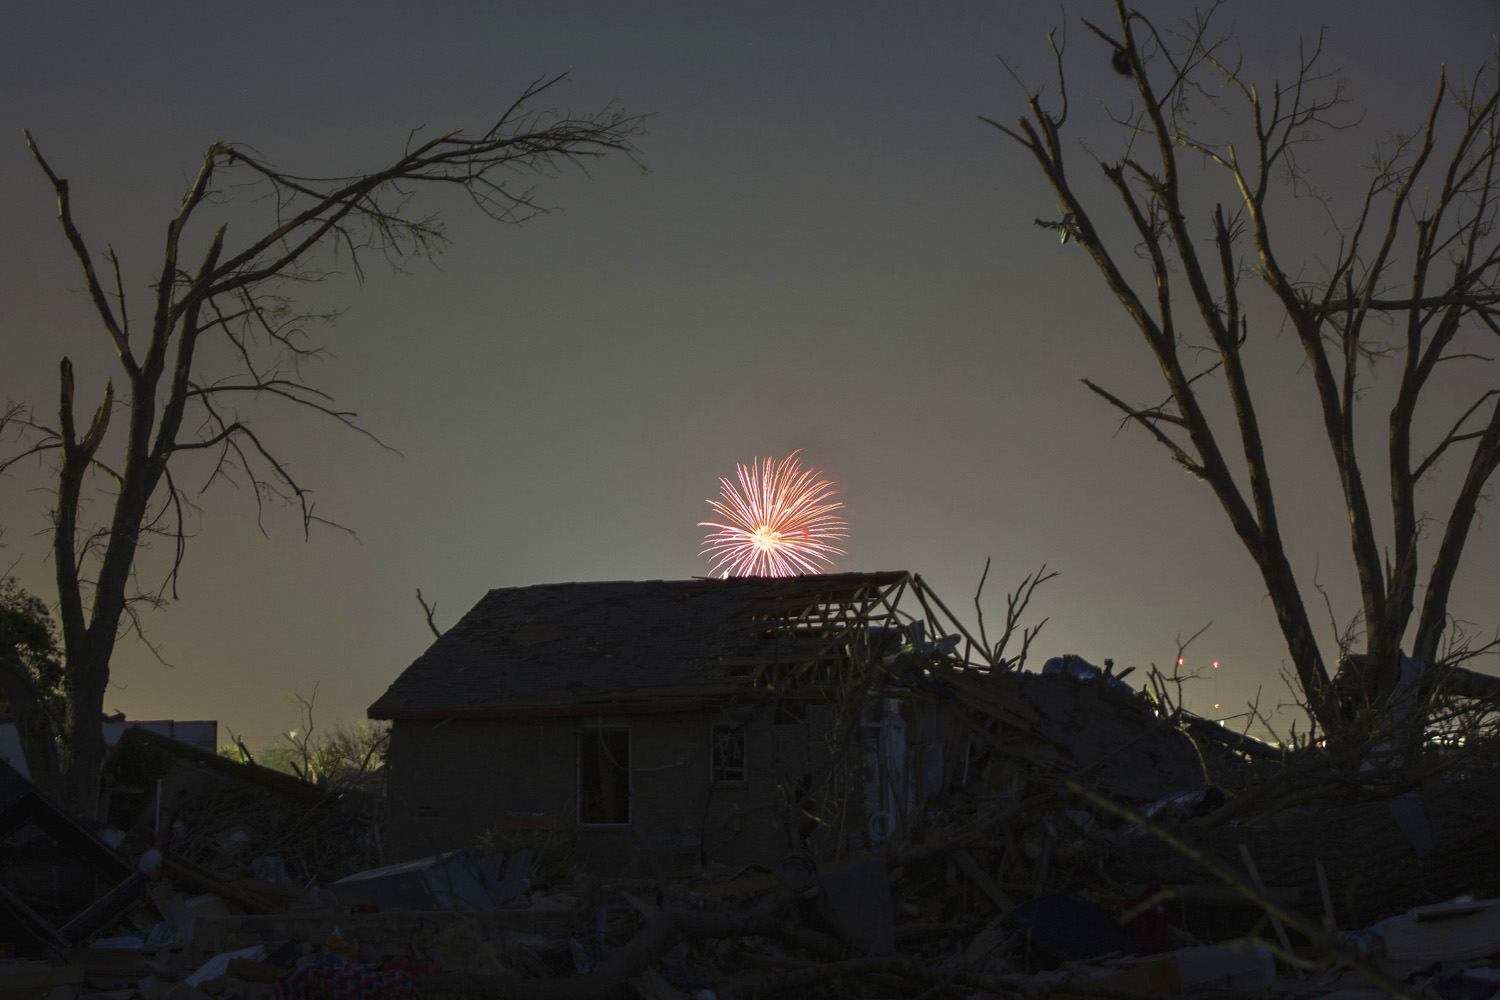 May 26, 2013. Memorial day fireworks explode over a house damaged by the May 20 afternoon tornado in Moore, Okla.